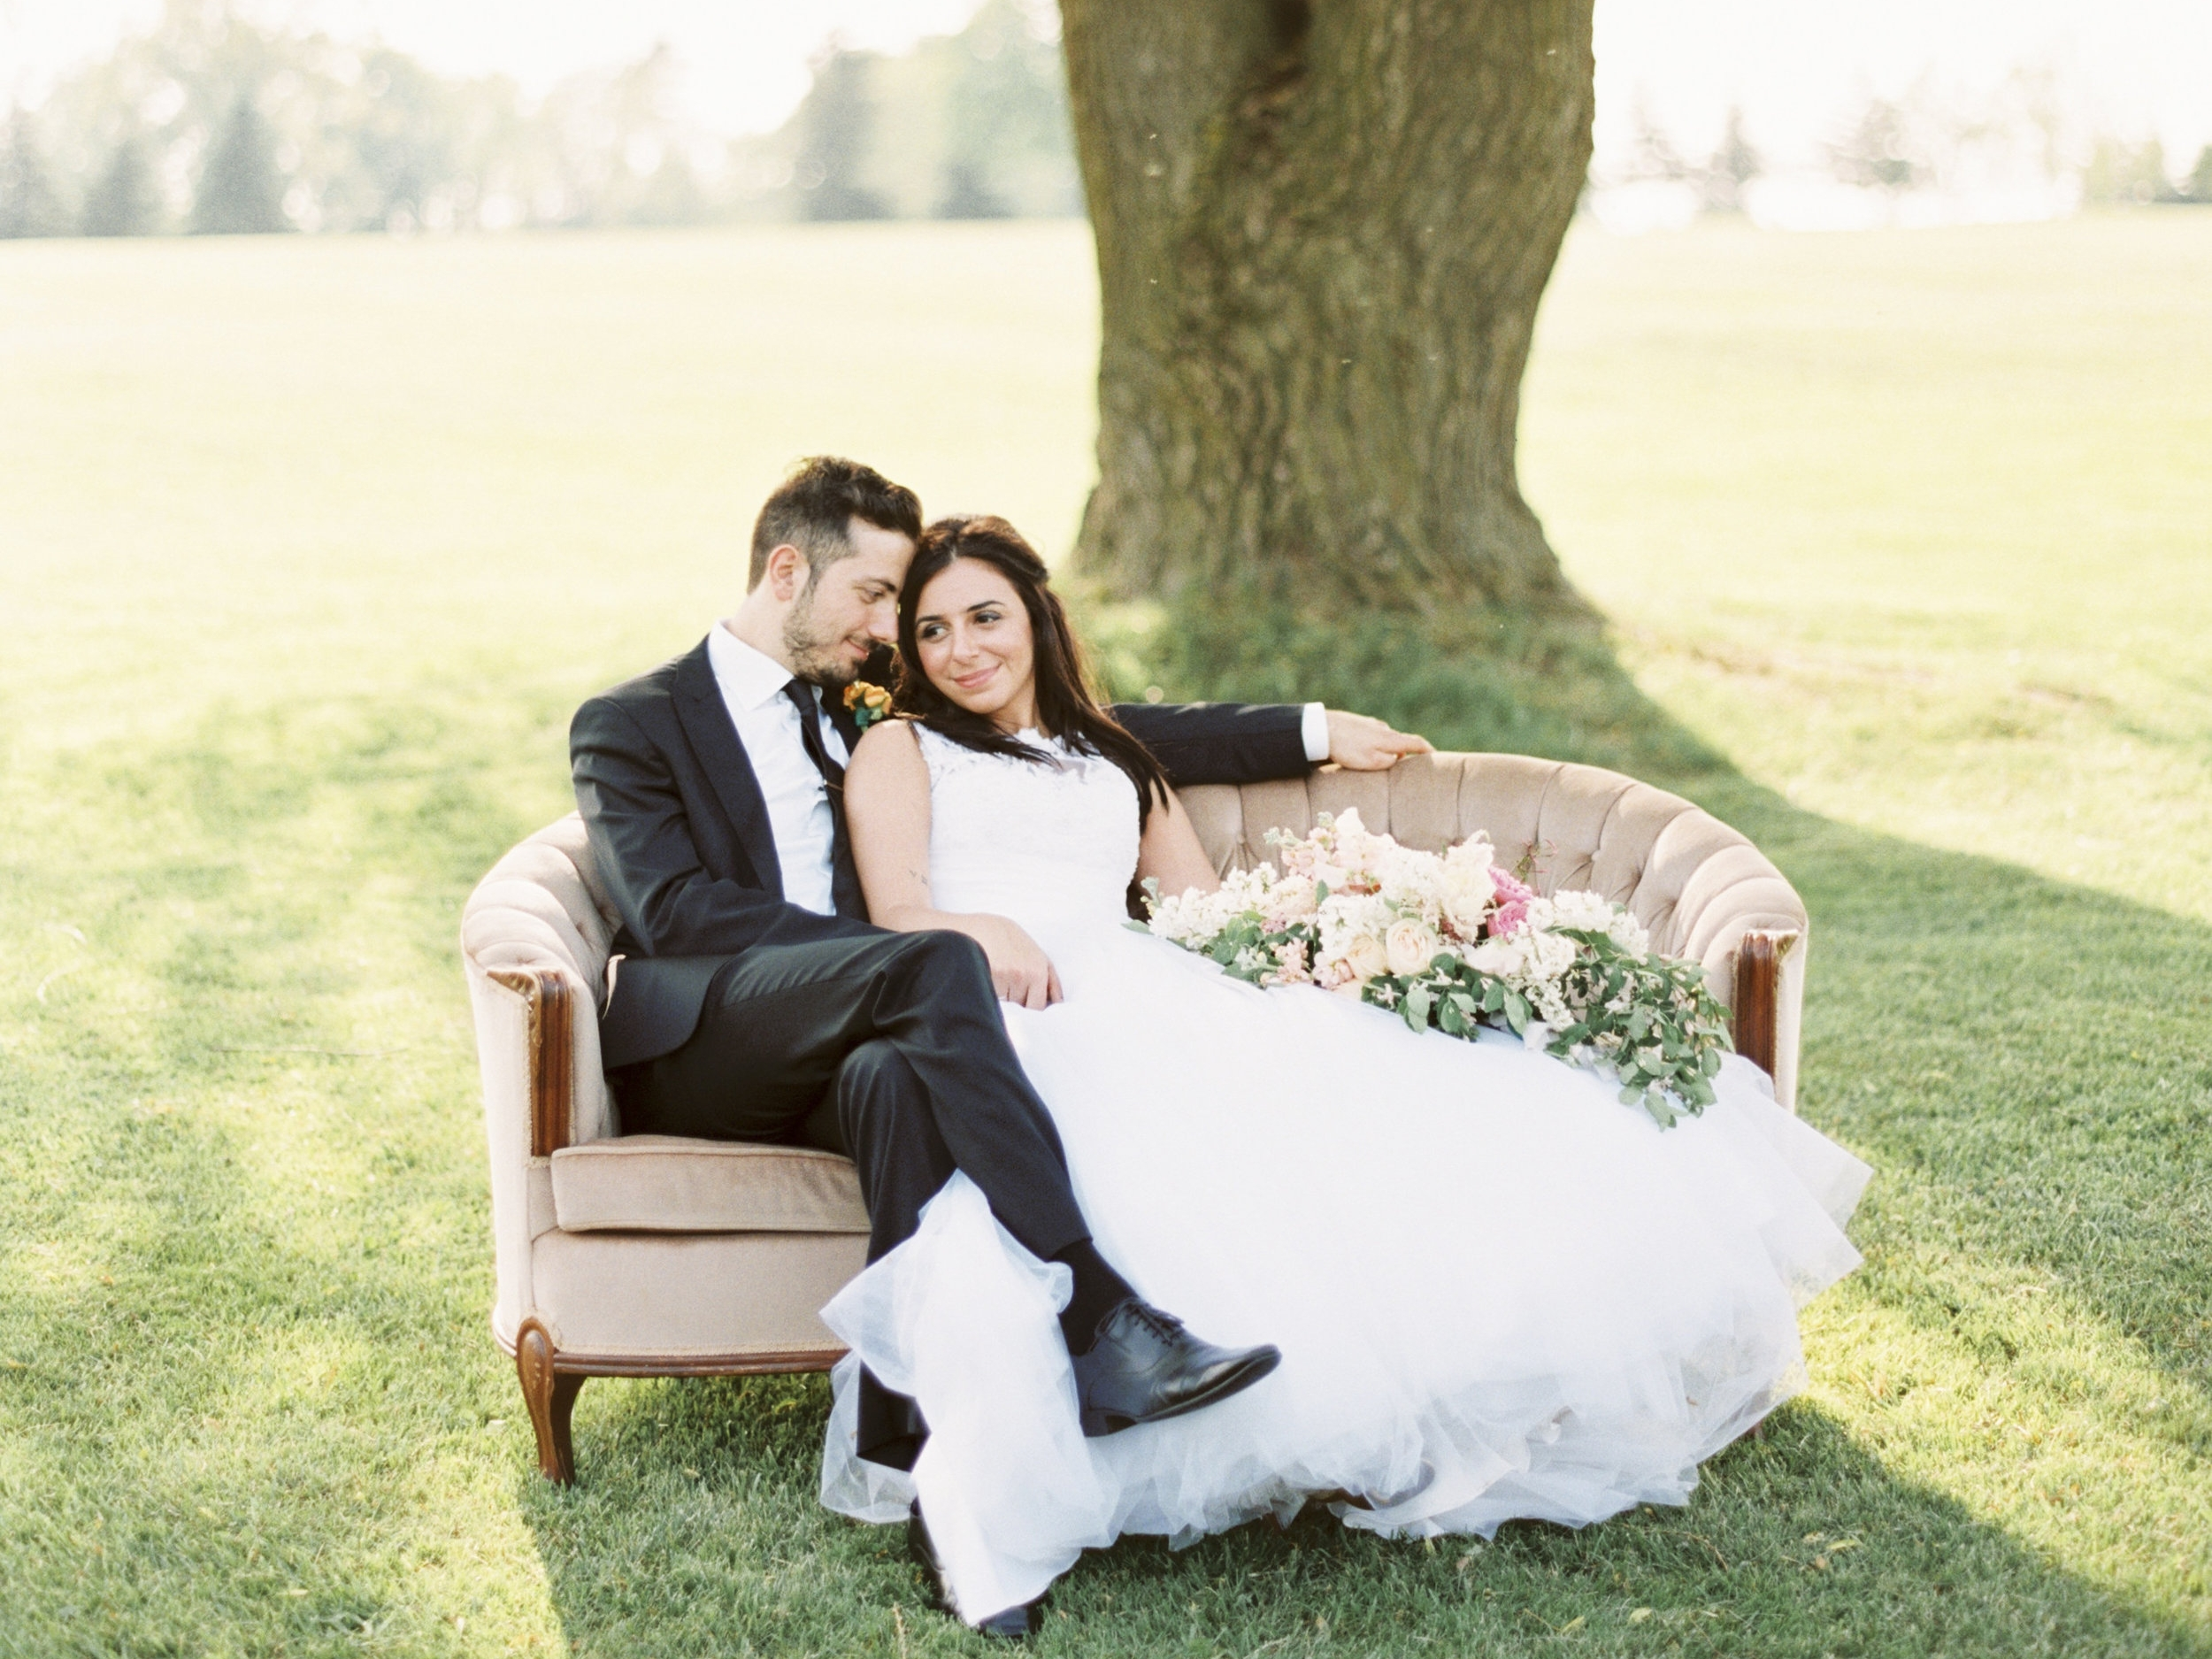 want to get someone to design and plan the whole shebang? - If you're looking for a package that includes everything from linen selection to minute by minute timelines, Full Planning is for you!